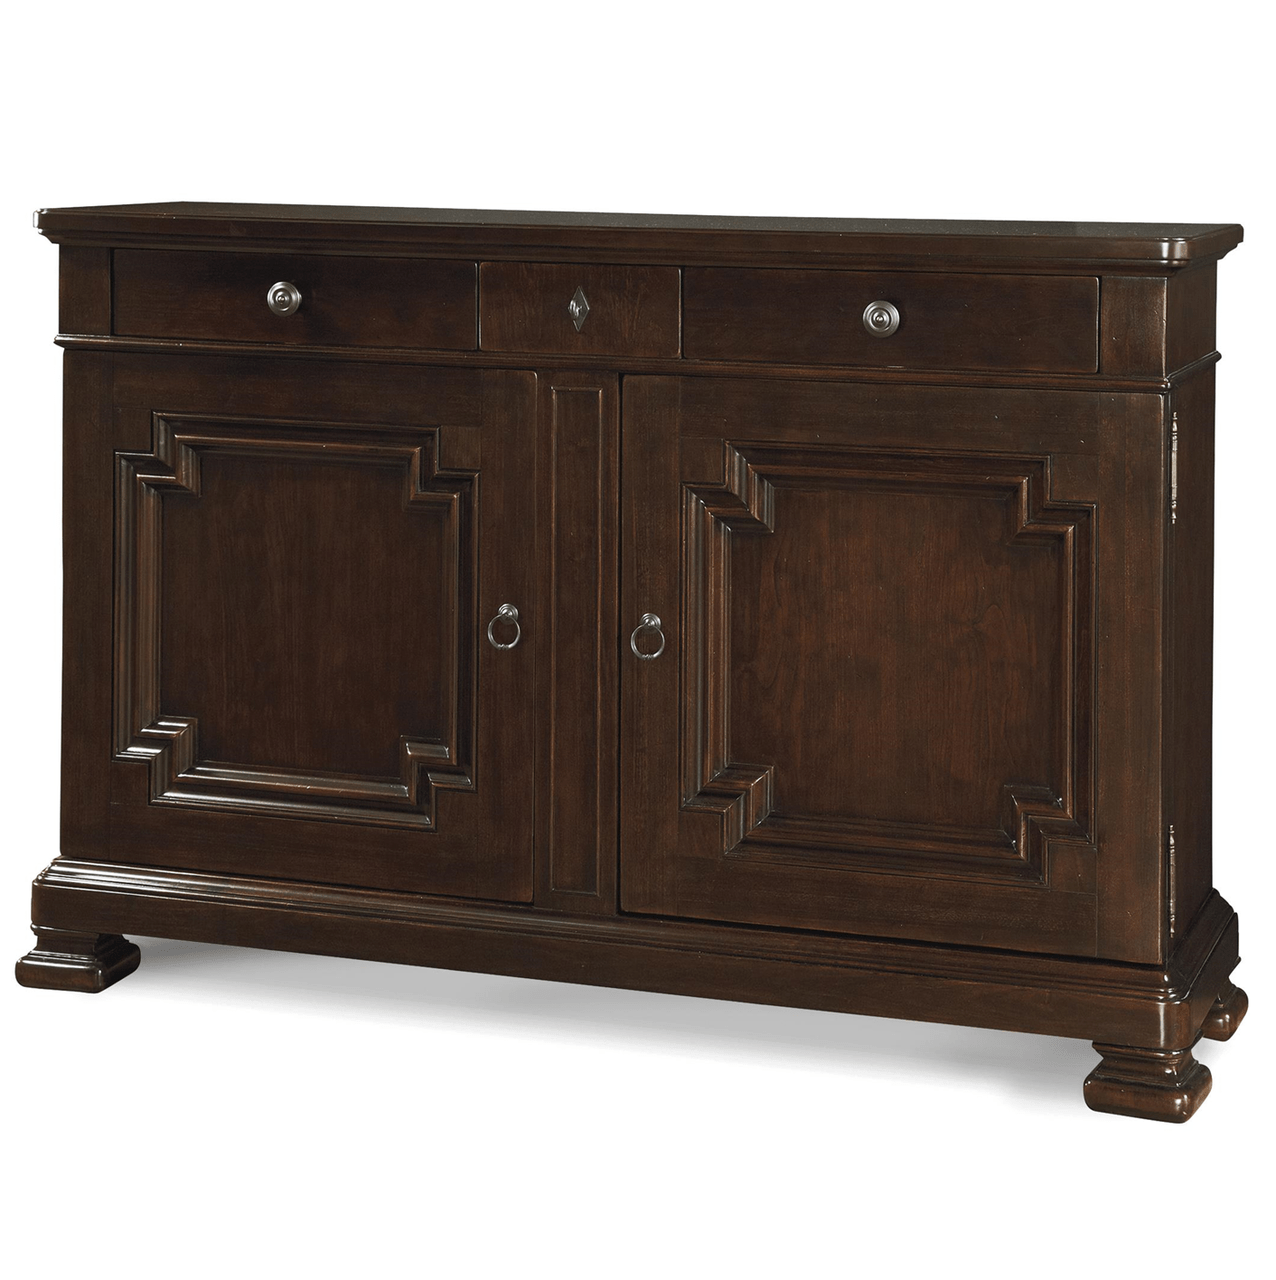 Dining Room Furniture Buffet Proximity Cherry Wood Dining Room Credenza Buffet